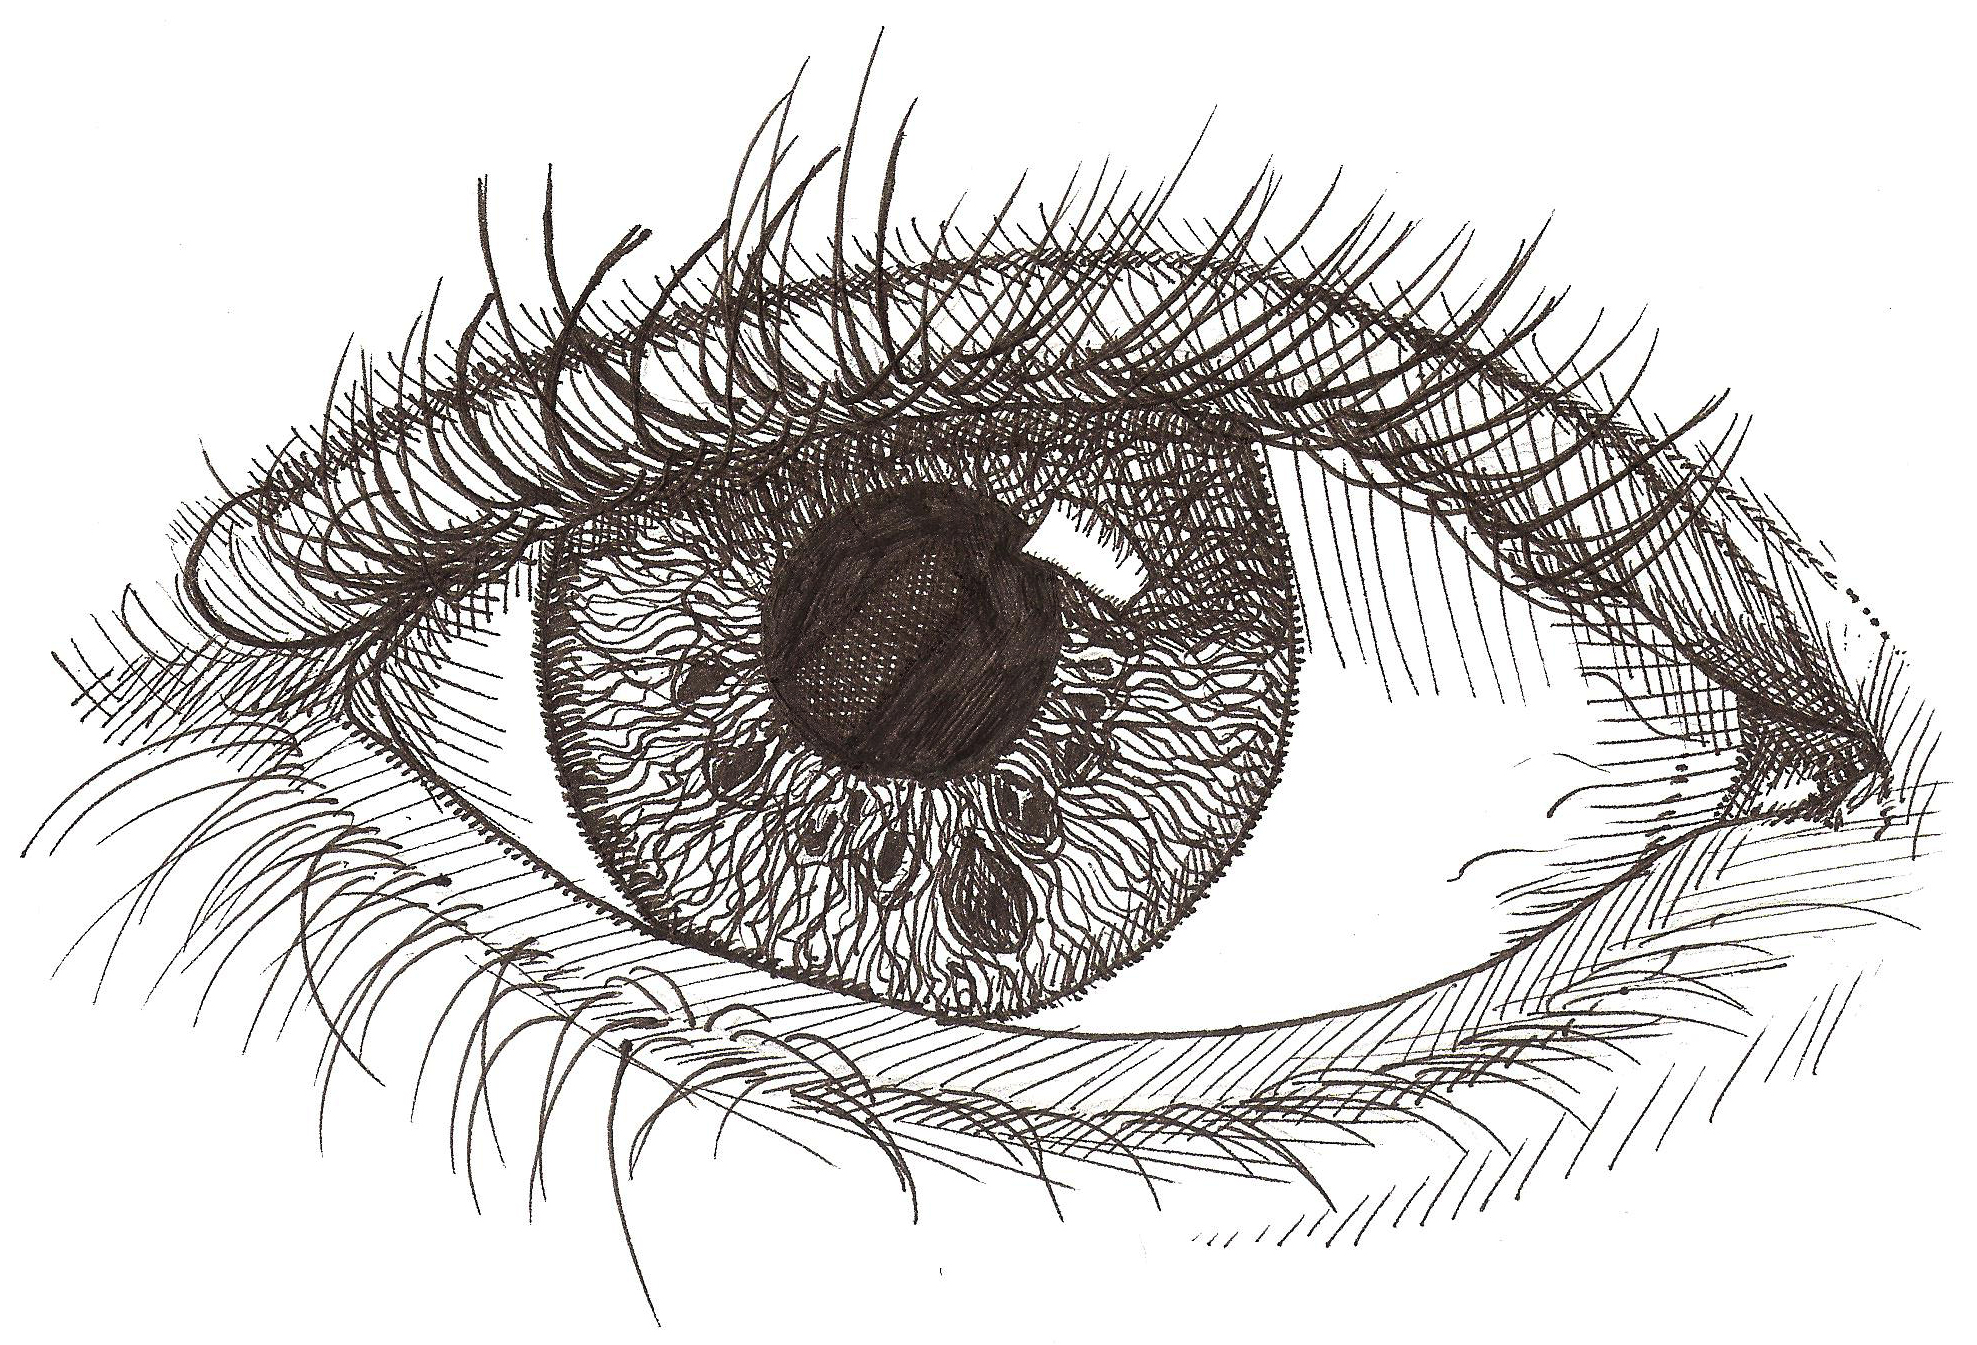 How to draw a human eye sketch of the human eye in detail